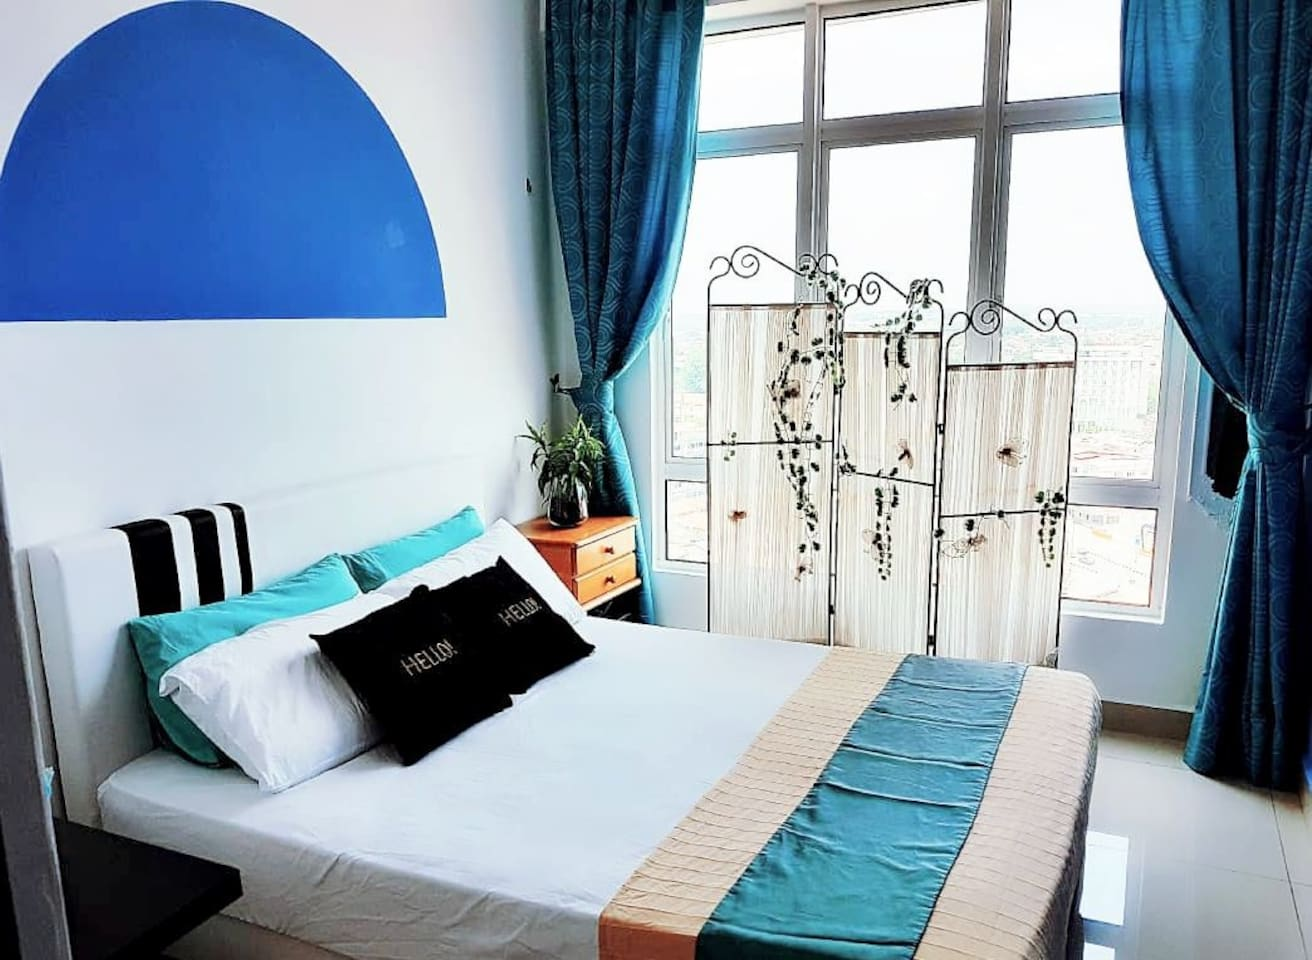 room 2 santorini theme this is photo after we repainted d wall.